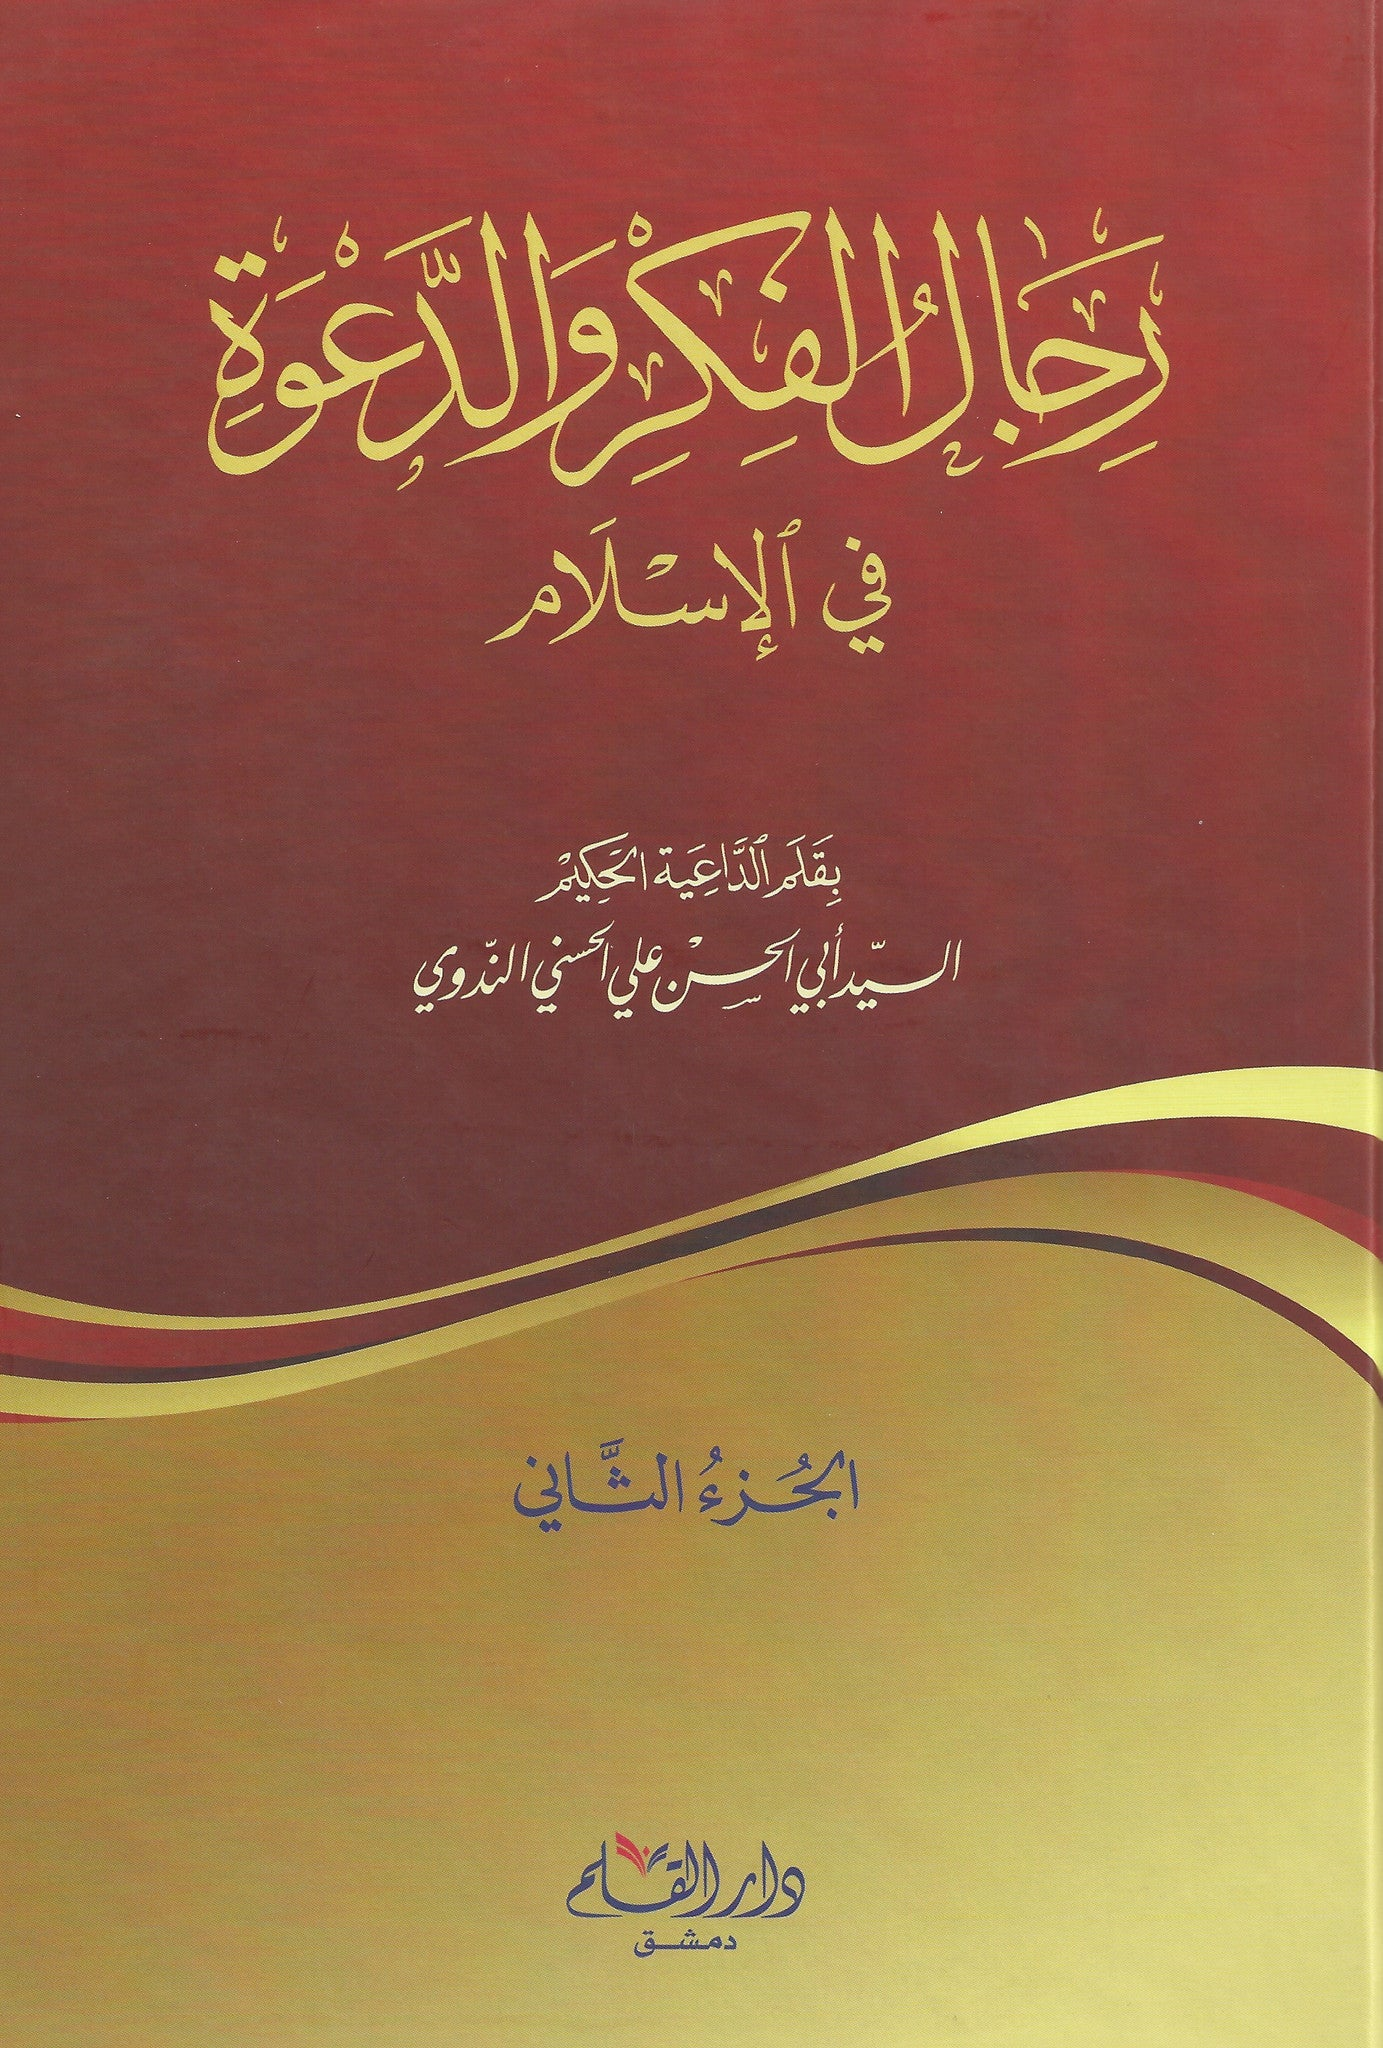 Rijal al-Fikr wa-l-Da'wa (4 volumes) (رجال الفكر والدعوة في الإسلام) , Shaam - Daybreak International Bookstore, Daybreak Press Global Bookshop